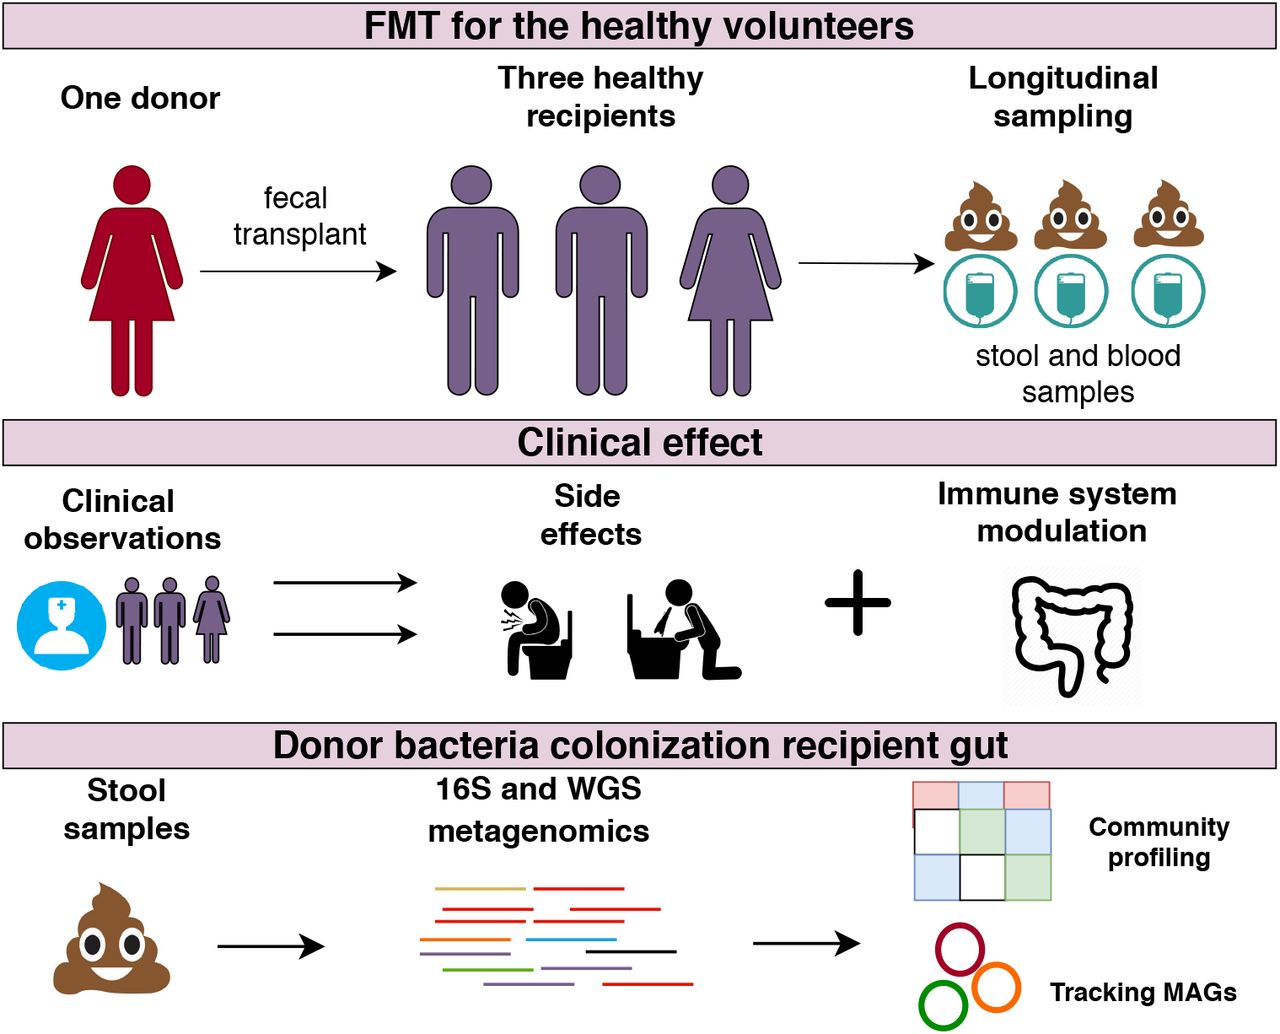 Long-term impact of fecal transplantation in healthy